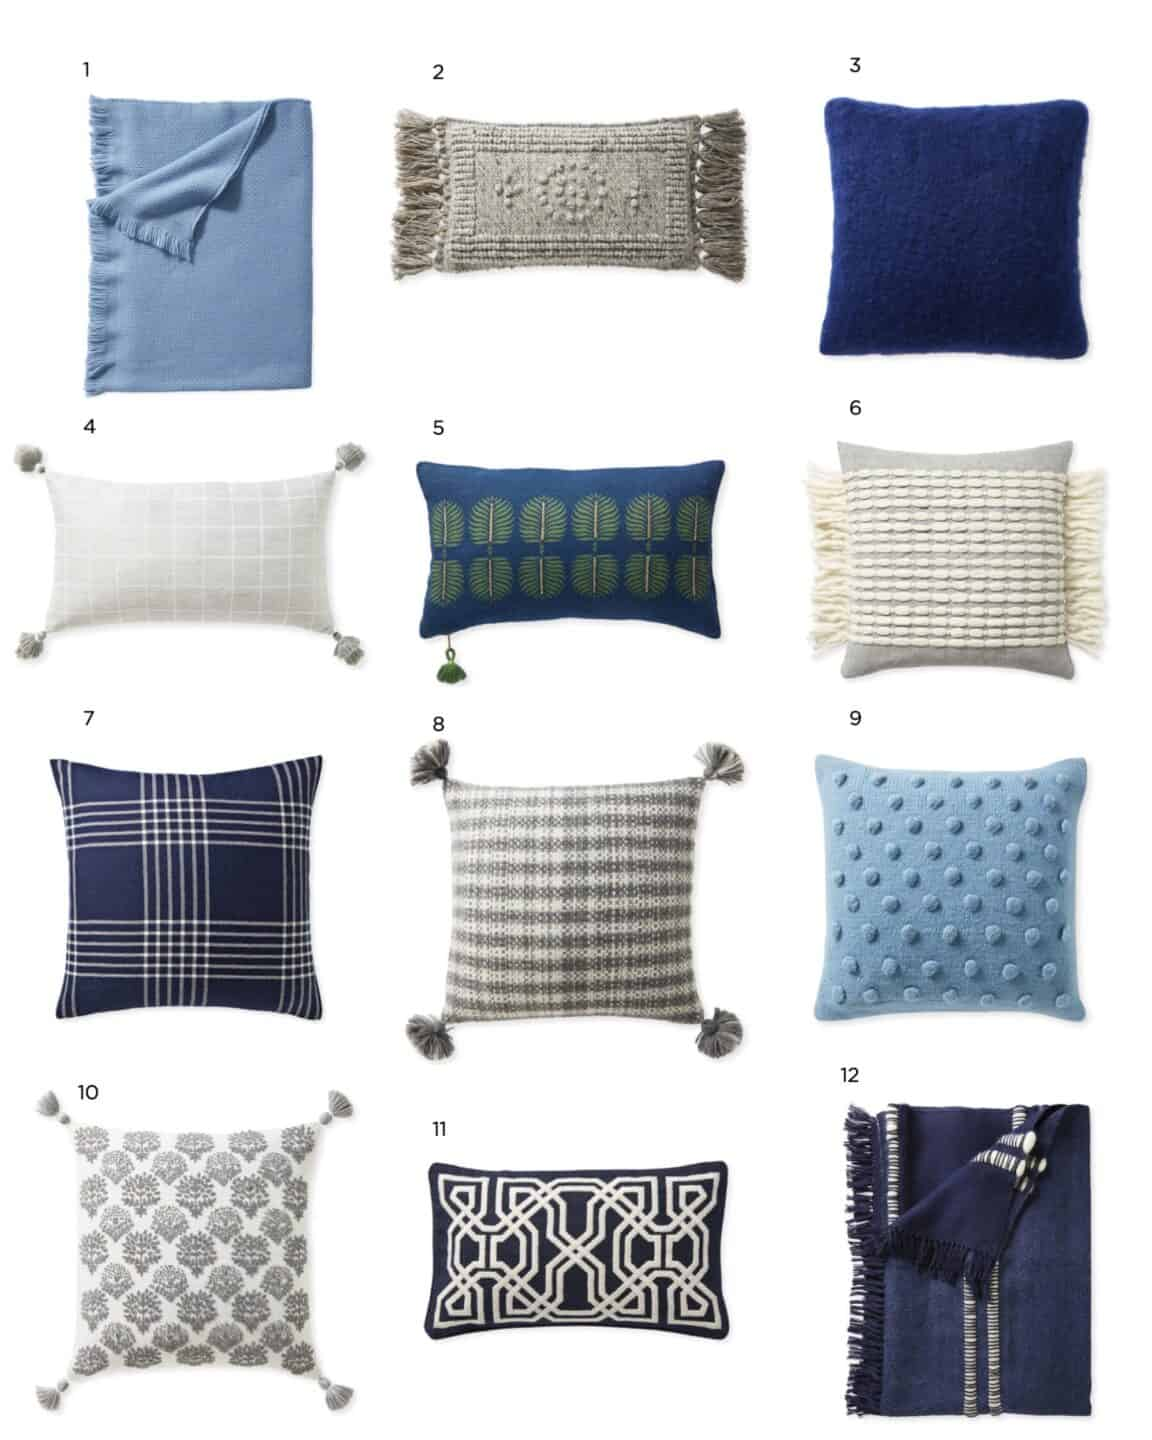 Pillow Refresh -- Shop the Serena & Lily Friends Family Event Now - code GUESTPREP for 20% off